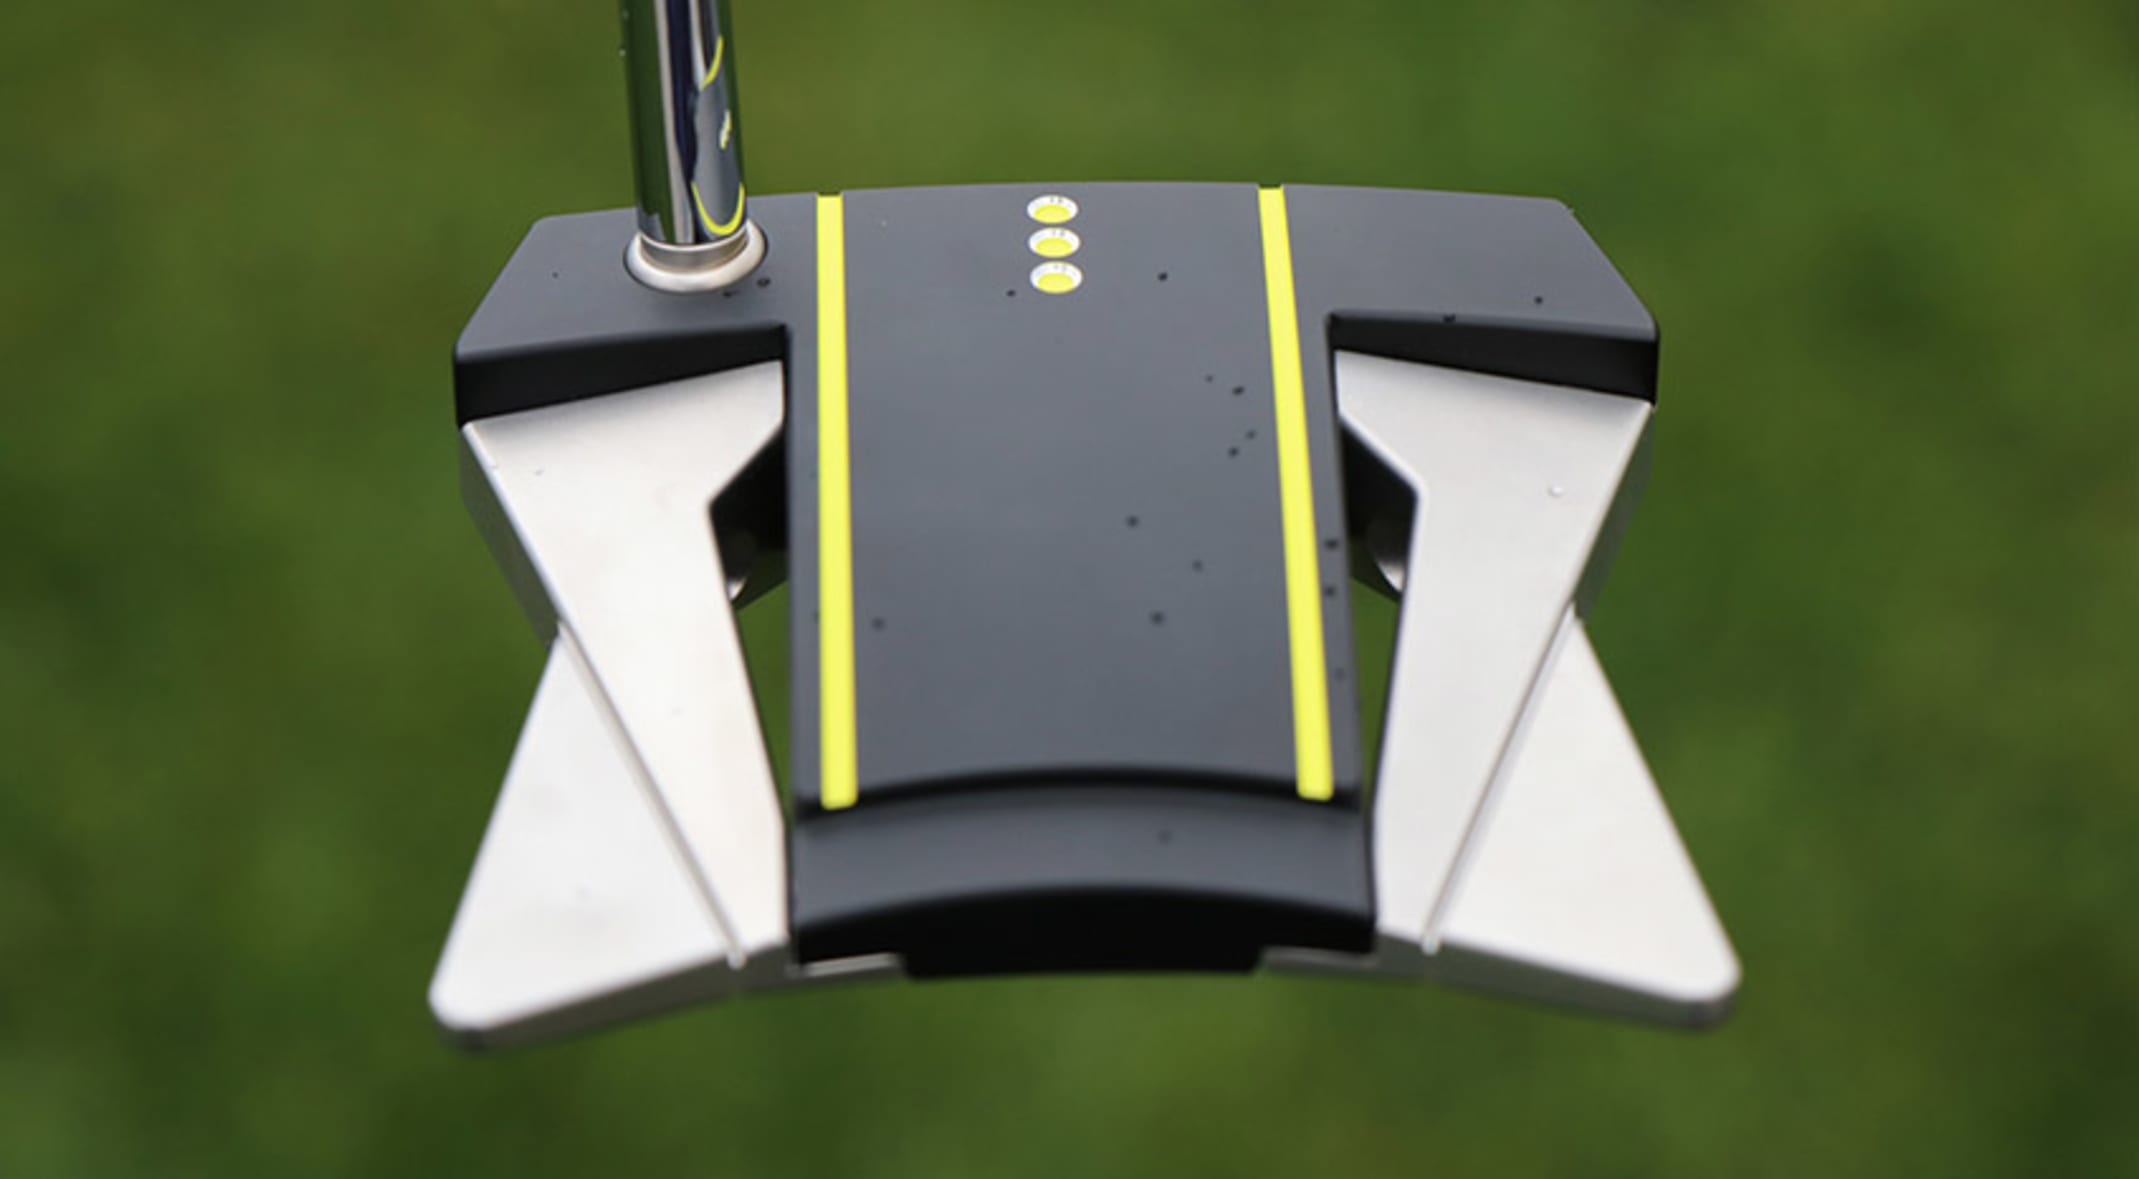 Spotted: New Scotty Cameron prototype putters